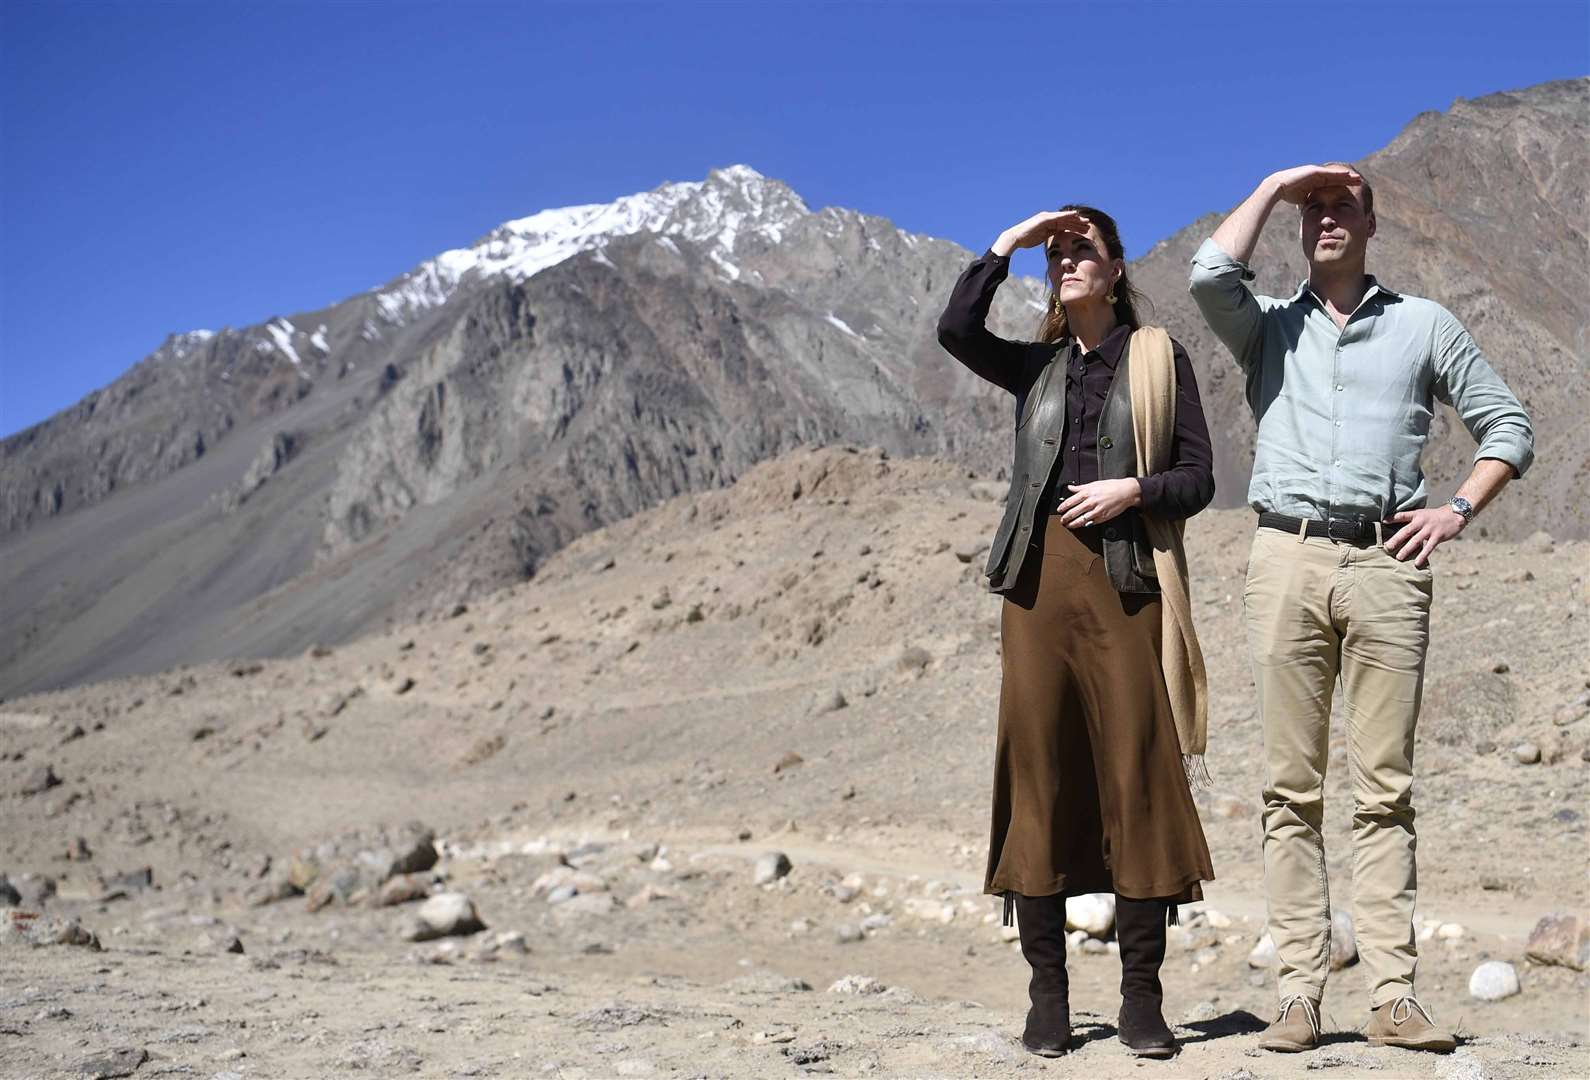 William and Kate saw climate change in progress during a visit to the Chiatibo glacier in Pakistan (Neil Hall/PA)